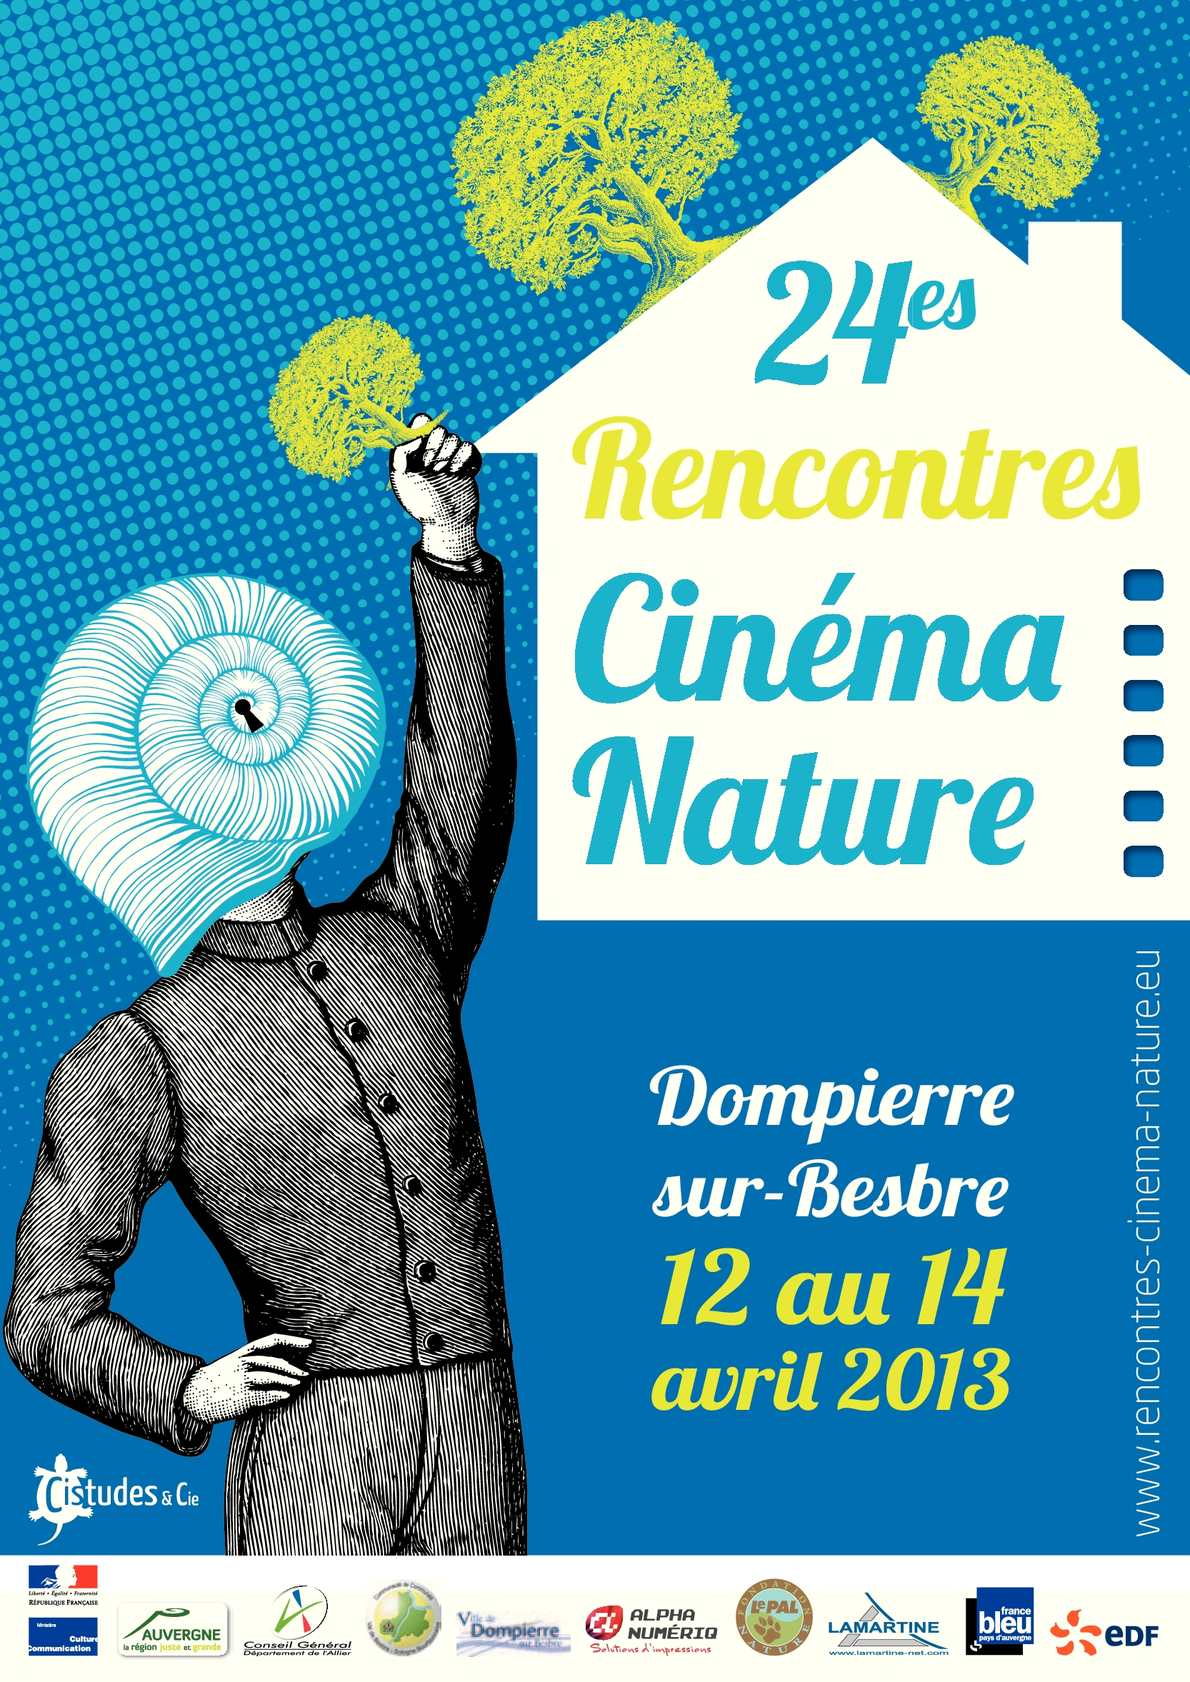 25e rencontres cinema-nature